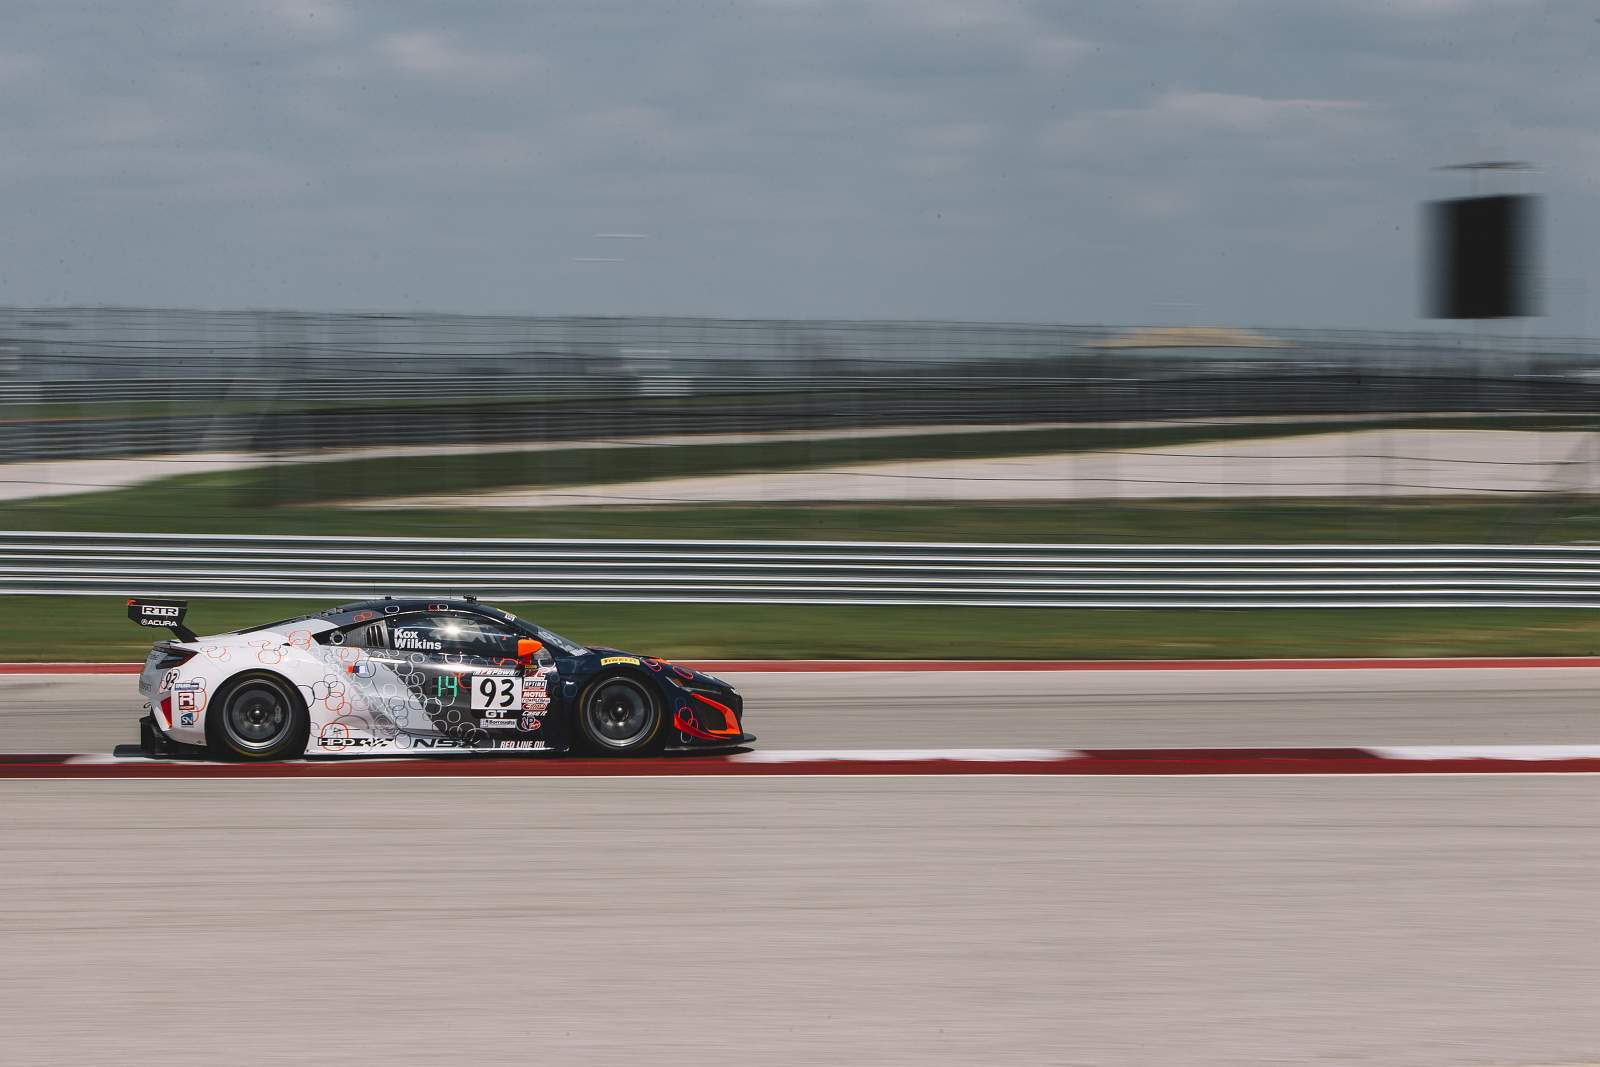 peter-kox-realtime-racing-pirelli-world-challenge-cota--005